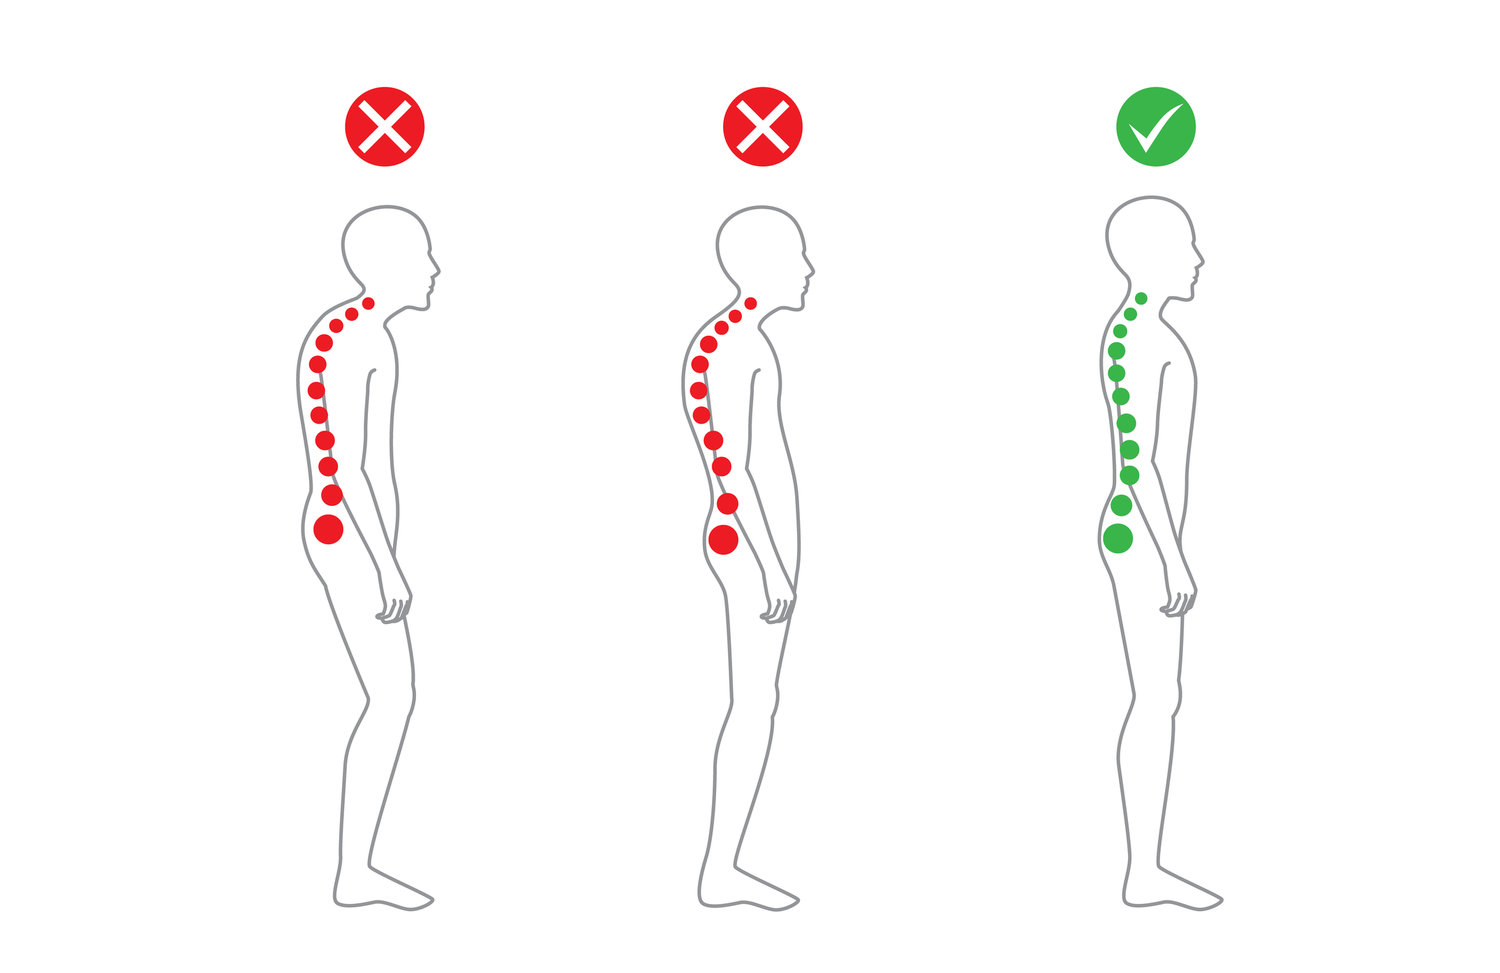 correct-alignment-of-body-in-standing-posture-65182627